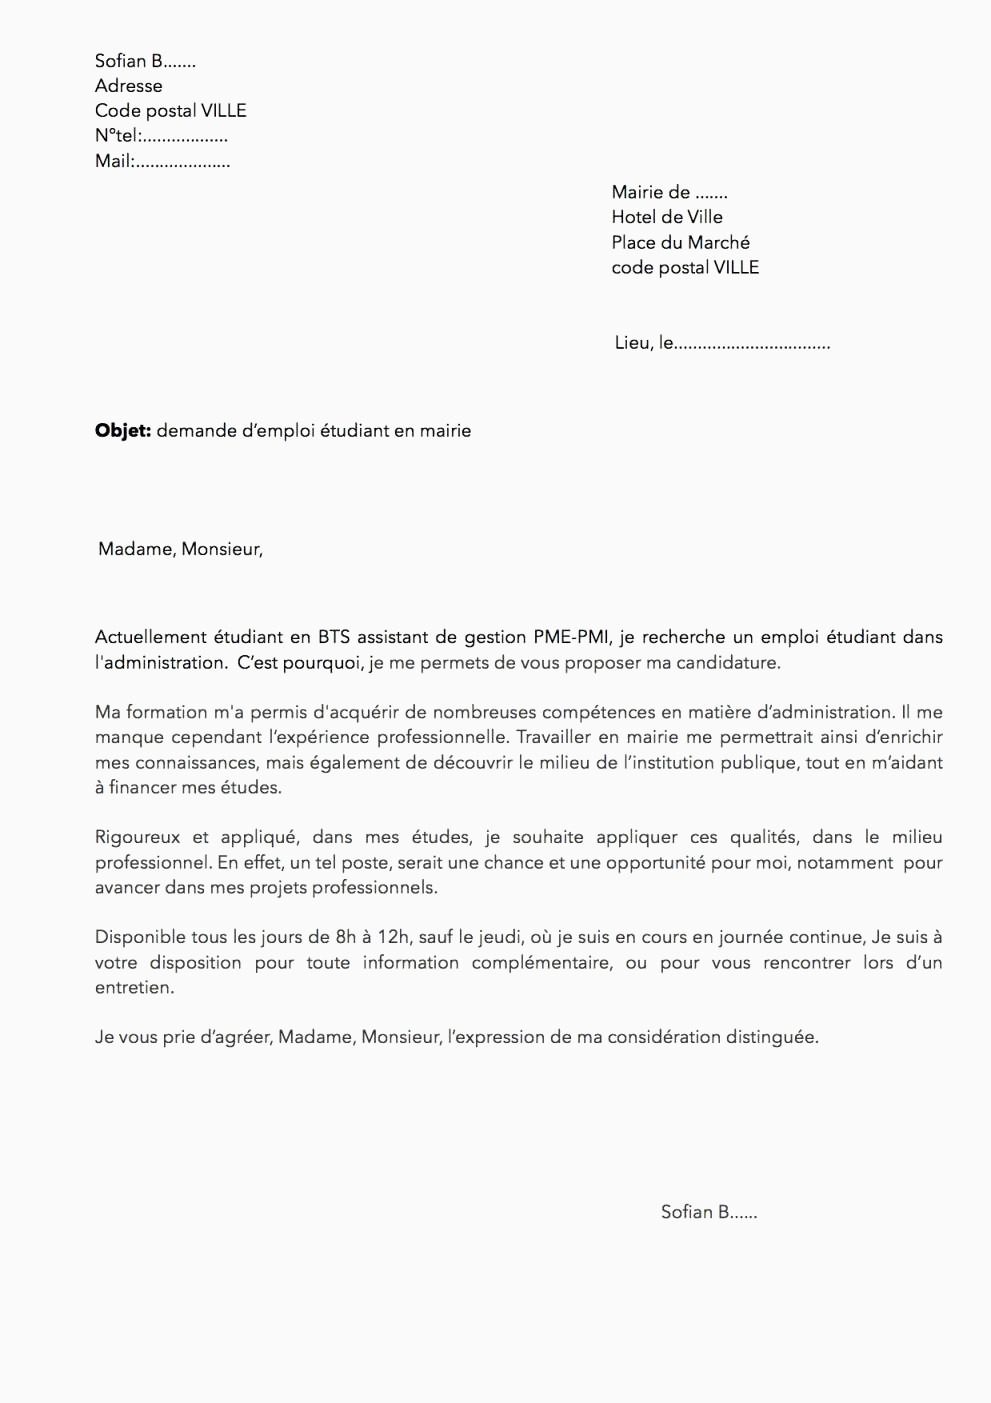 Lettre De Motivation Pour Un Service Civique Cv Pour Service Civique Simple Exemple Lettre De Motivation Coiffure